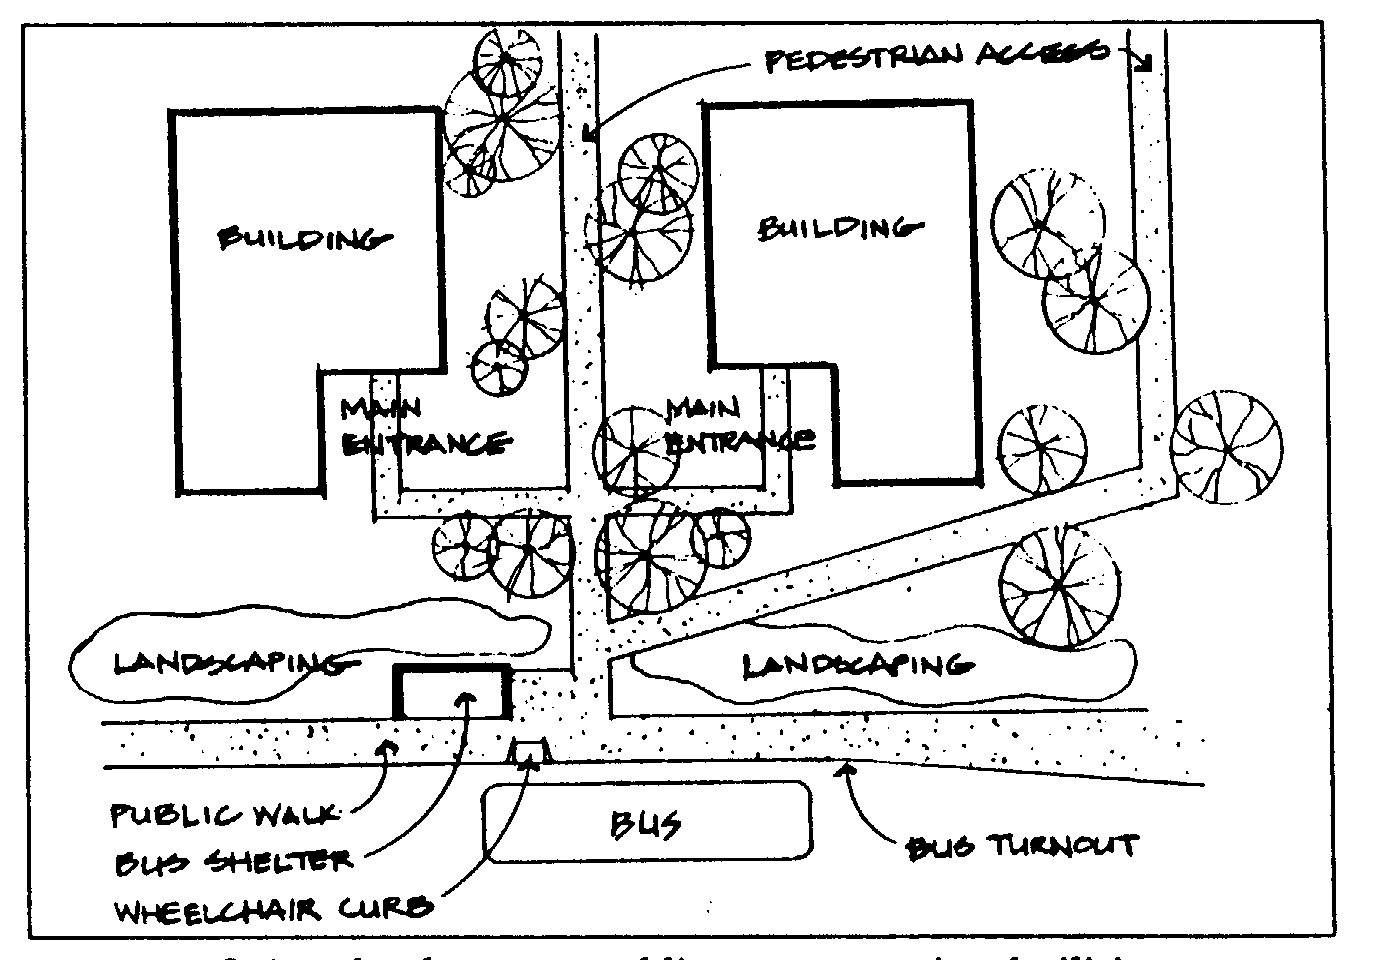 Pin By Westley Pinfield On Introduction To Level Design